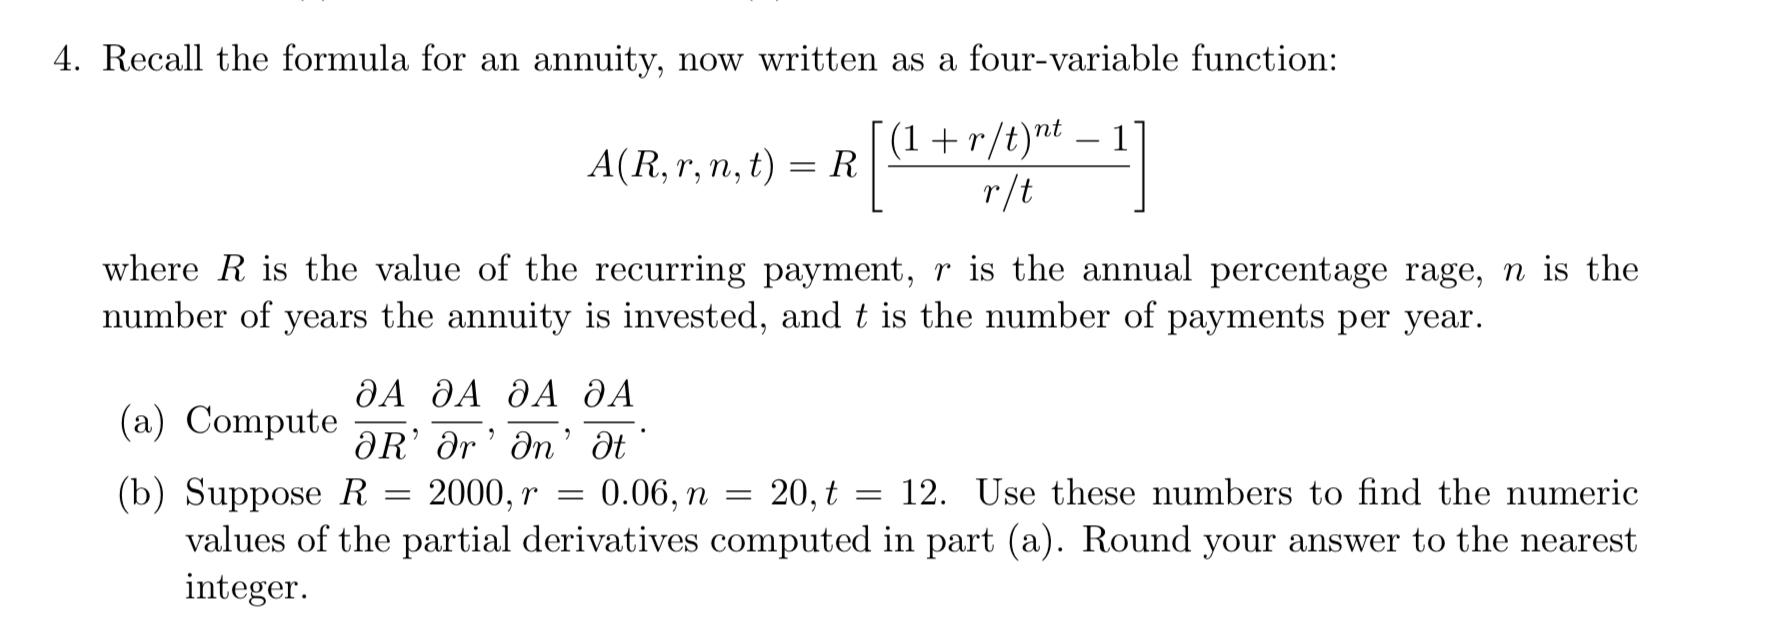 4. Recall the formula for an annuity, now written as a four-variable function: A(R, r, n, t) = RI(1+r/tr-i where R is the value of the recurring payment, r is the annual percentage rage, n is the number of years the annuity is i ments per year. , and t is the number of pay ДА ДА ДА ДА (a) Compute-R, Or, n. at (b) Suppose R 2000, r-0.06, п-20.ț 12. Úse these numbers to find the numeric values of the partial derivatives computed in part (a). Round your answer to the nearest integer